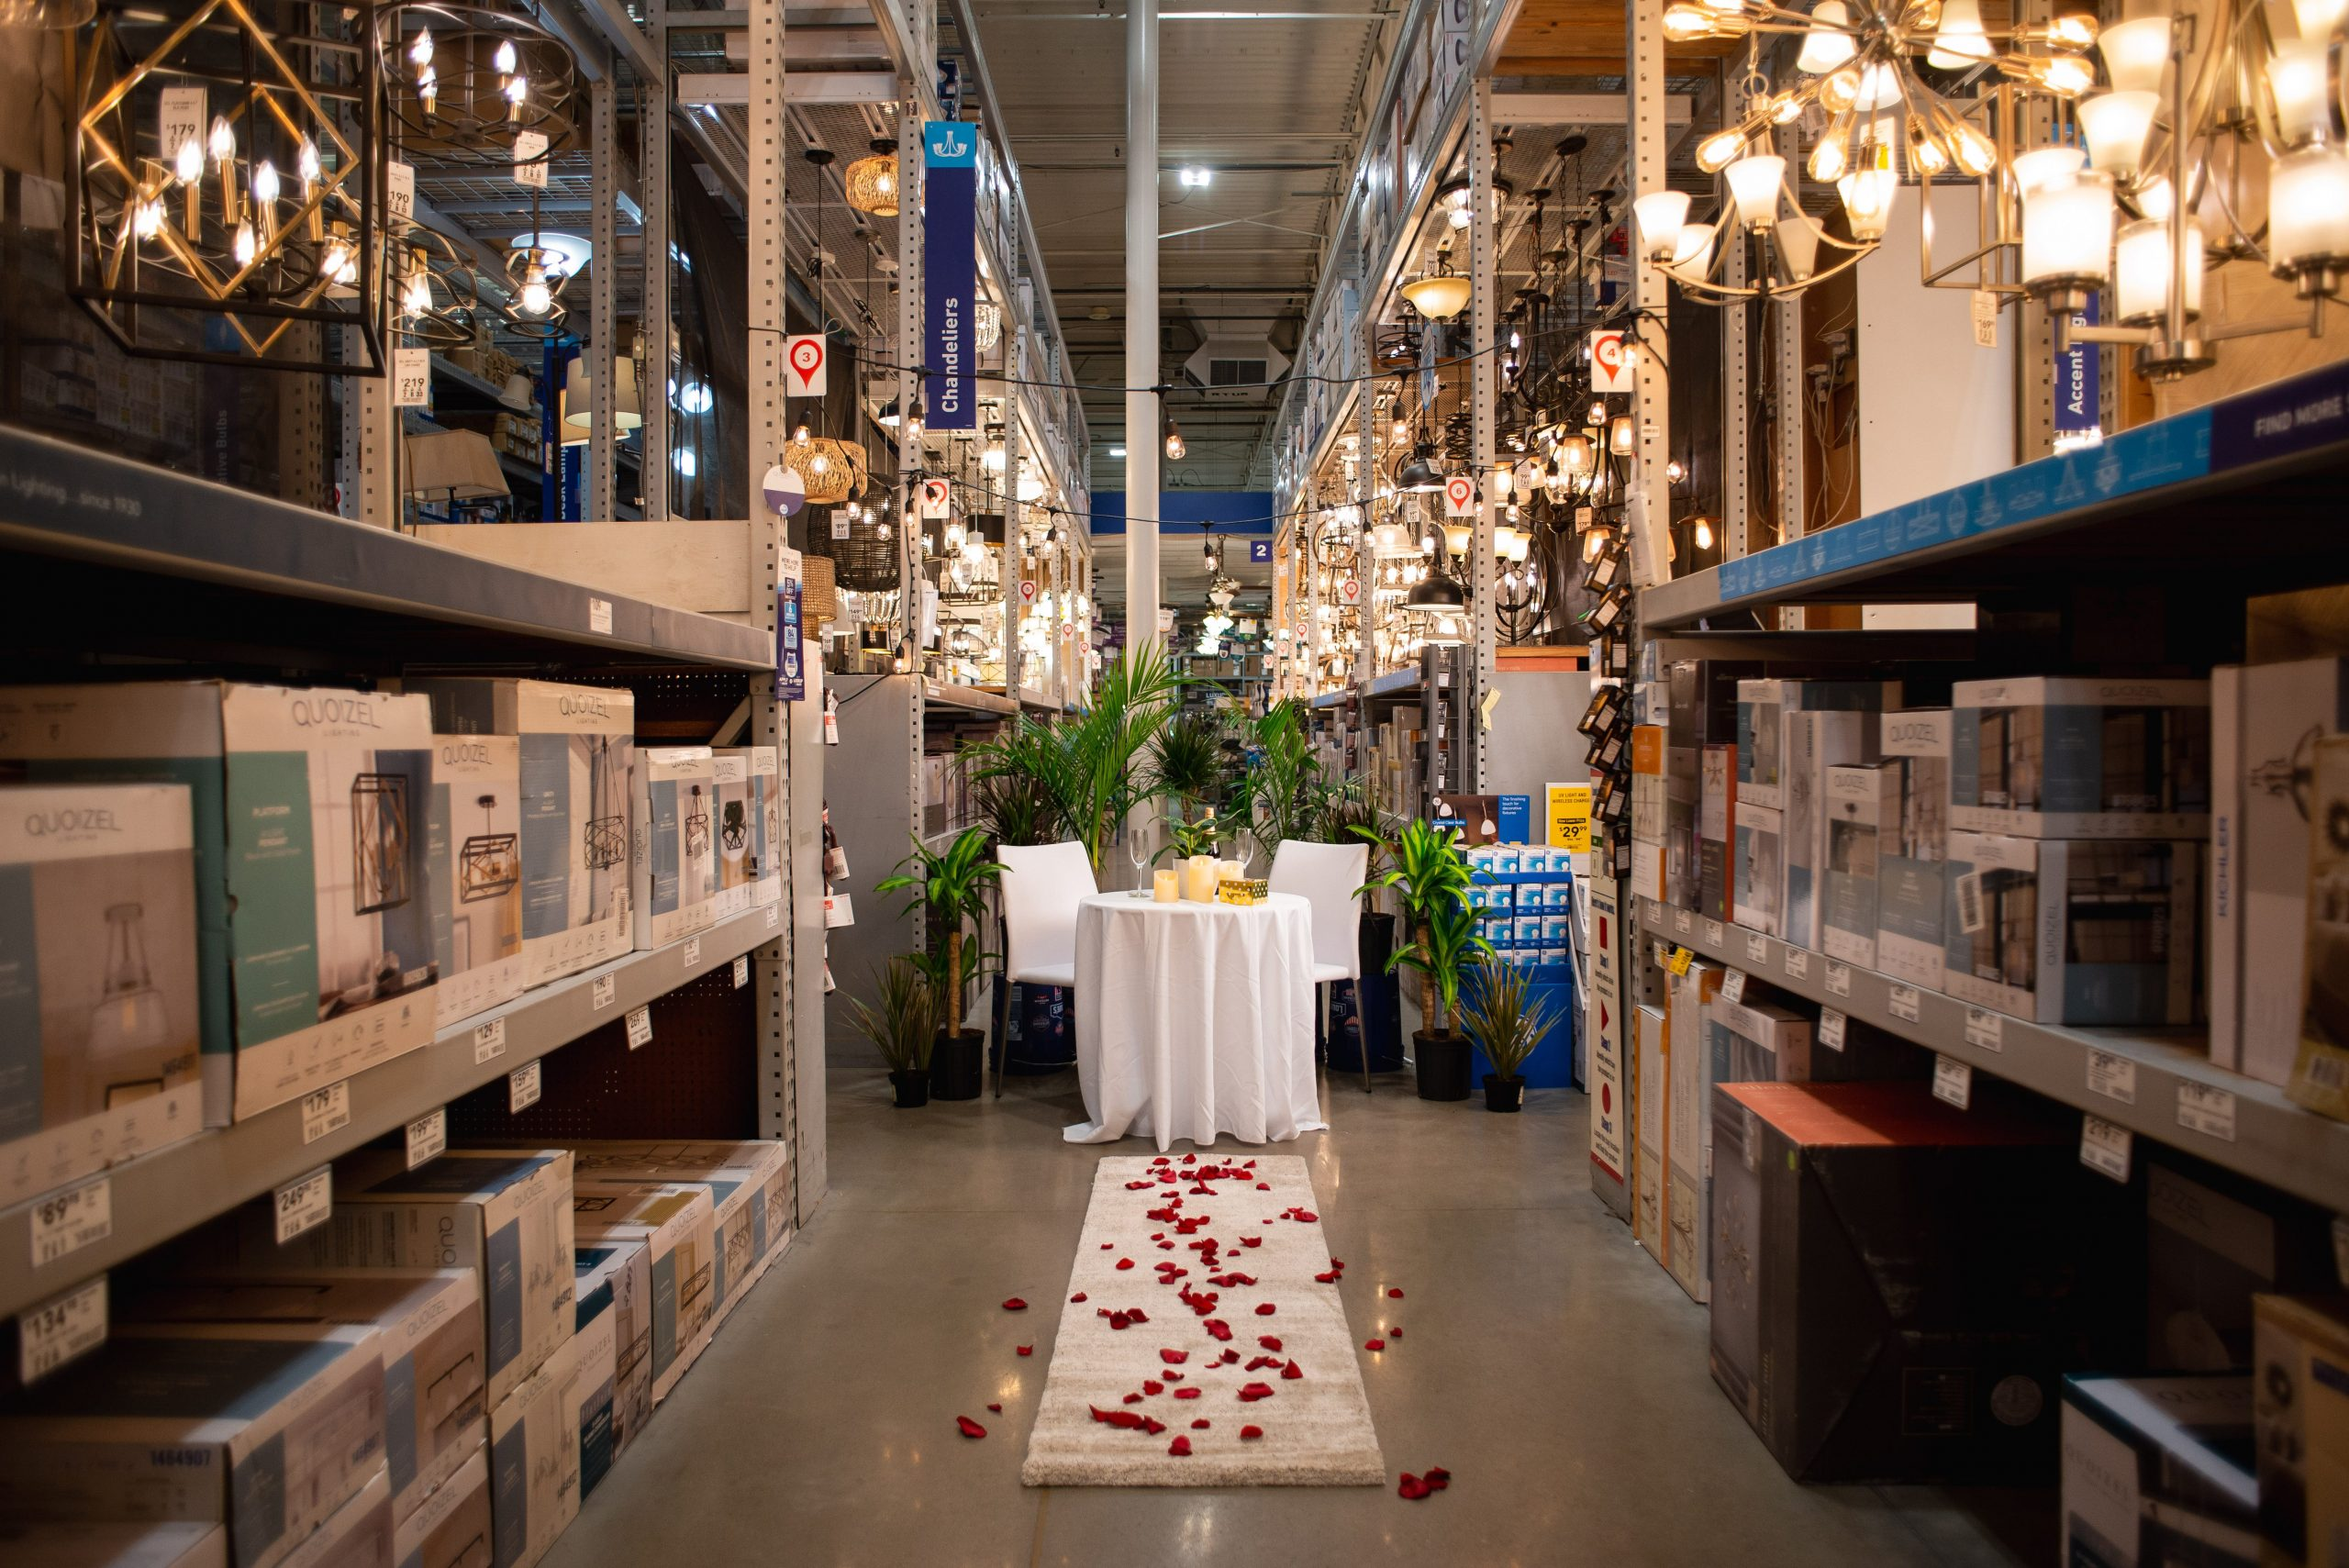 Valentine's Day at Lowe's? 50 couples will win a 'Night of Lowemance' date, plus there's a virtual event for all